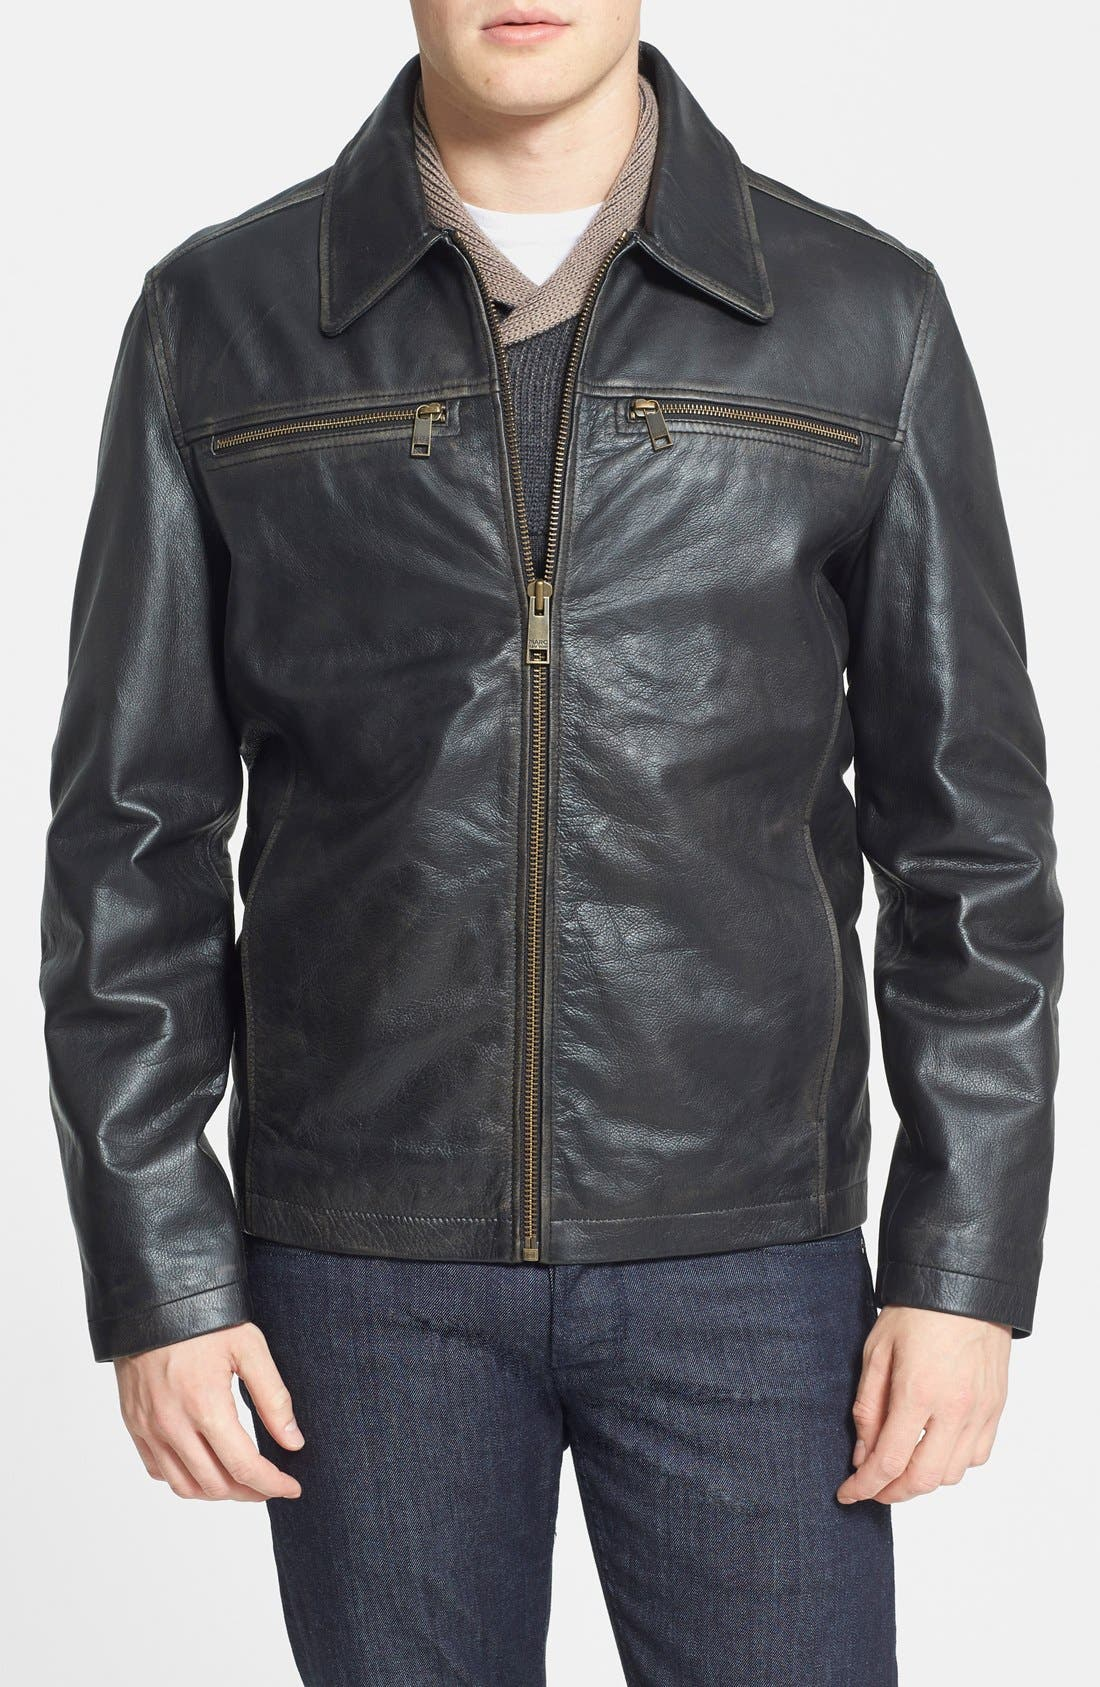 Alternate Image 1 Selected - Marc New York by Andrew Marc 'Romney' Distressed Leather Jacket (Online Only)